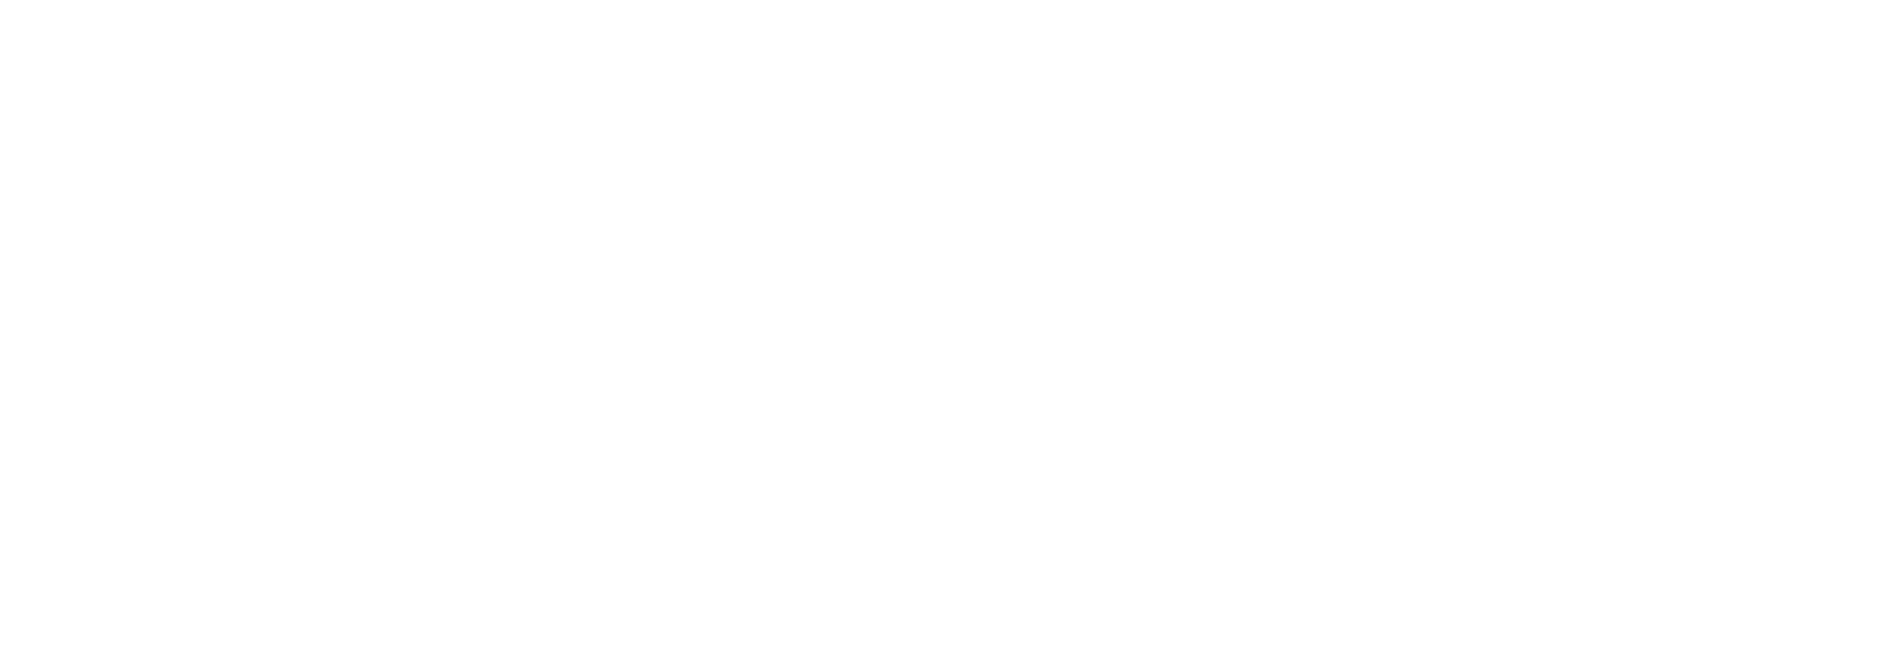 We Mt Eden Automotive Ltd want to thank you for coming to our auto repair shop's website.We have over 17 years of experience .